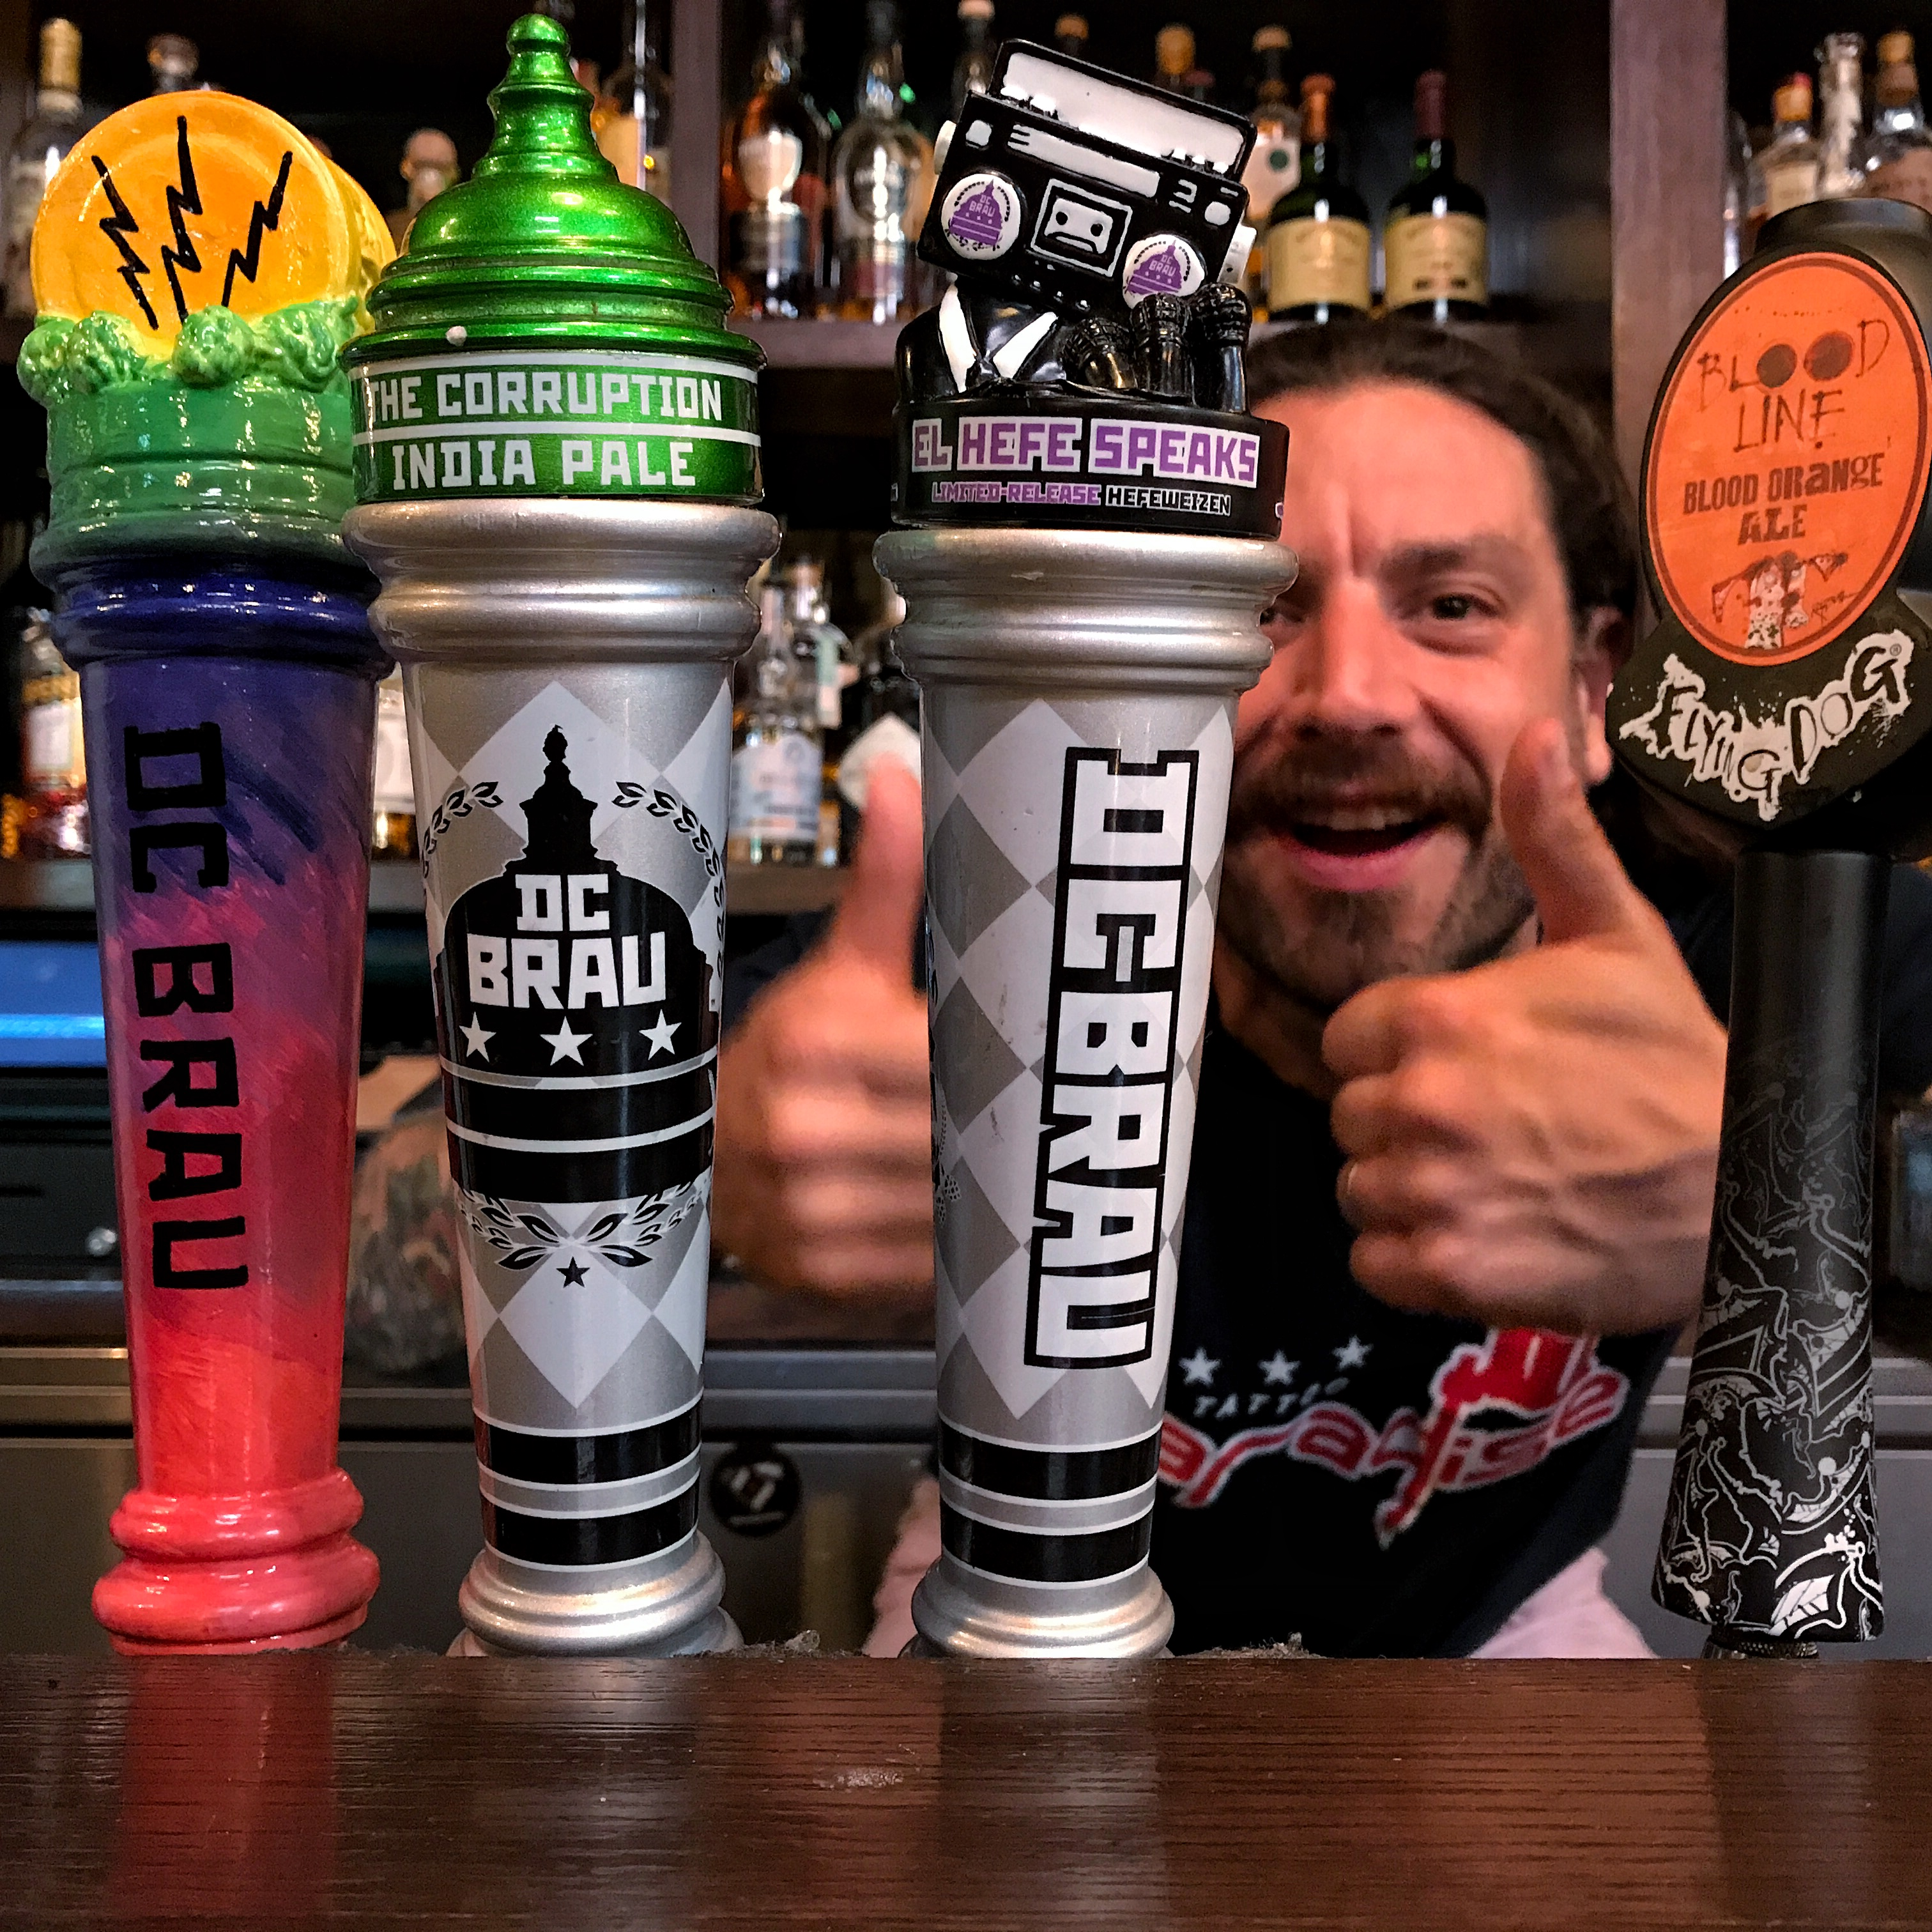 DC Brau Brewing, Boundary Stone, New Columbia Distillers and DC Reynolds